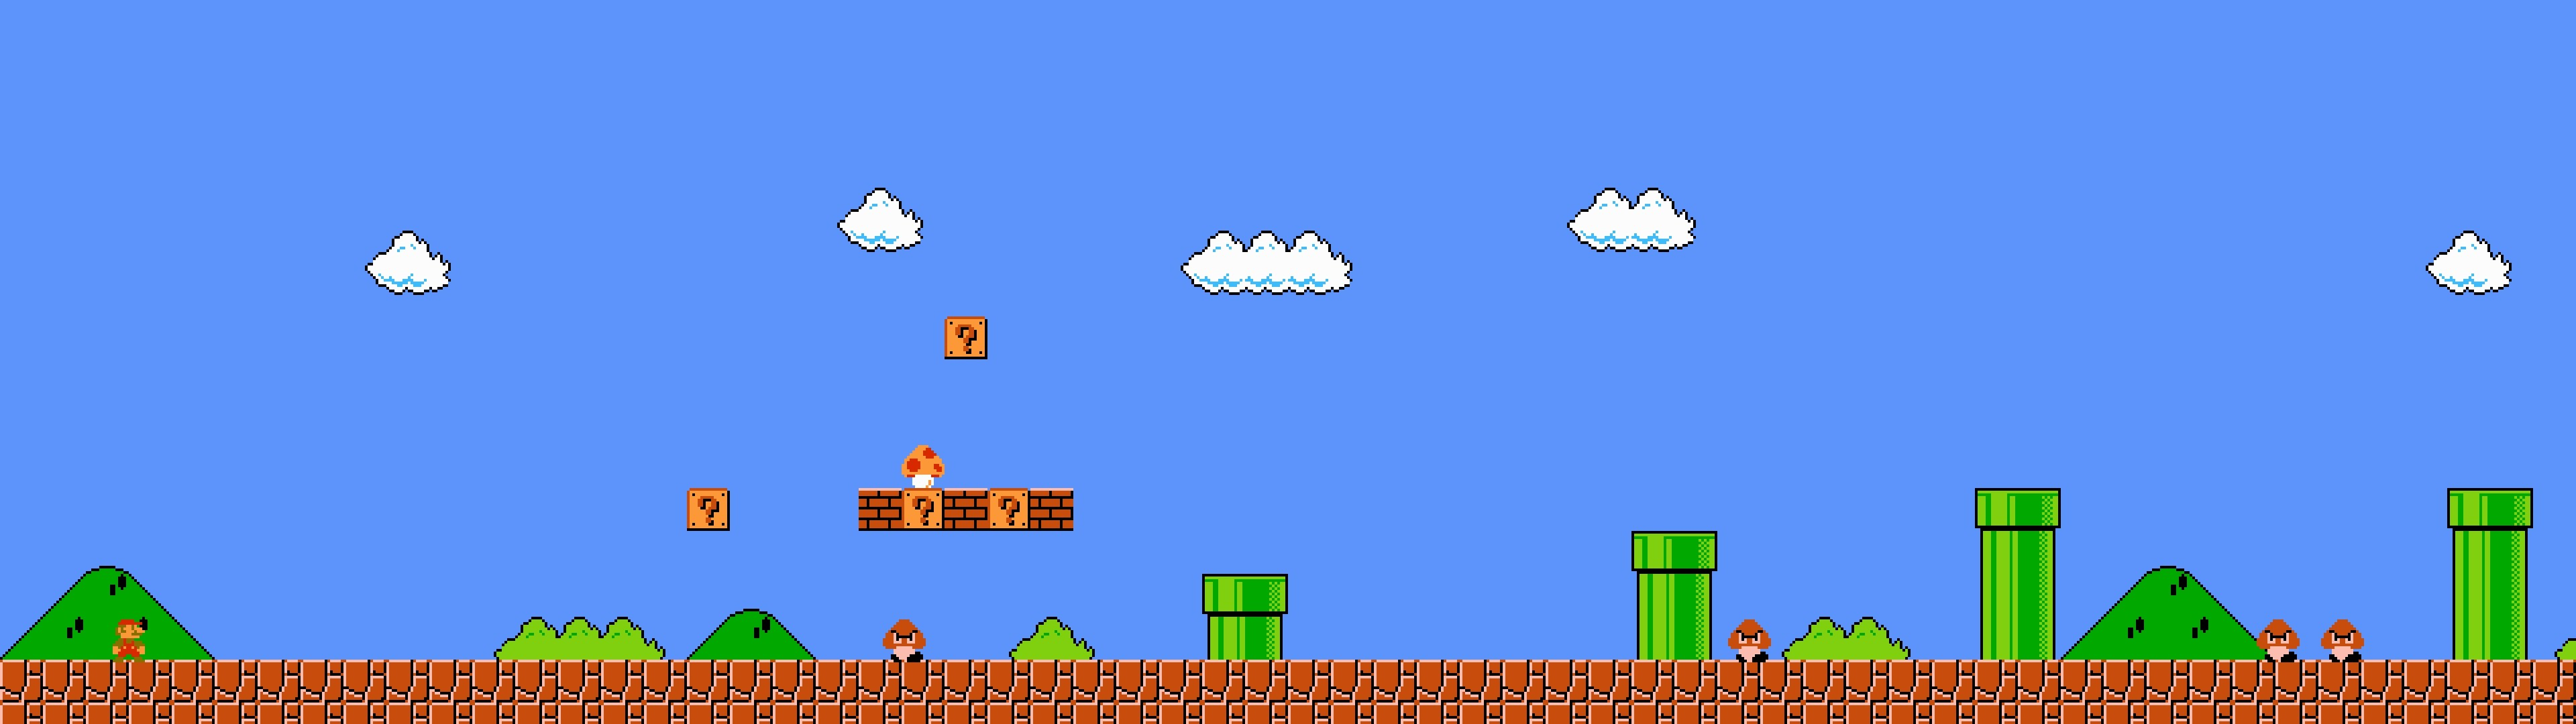 3840x1080 Dual-screen wallpapers, assorted retro games